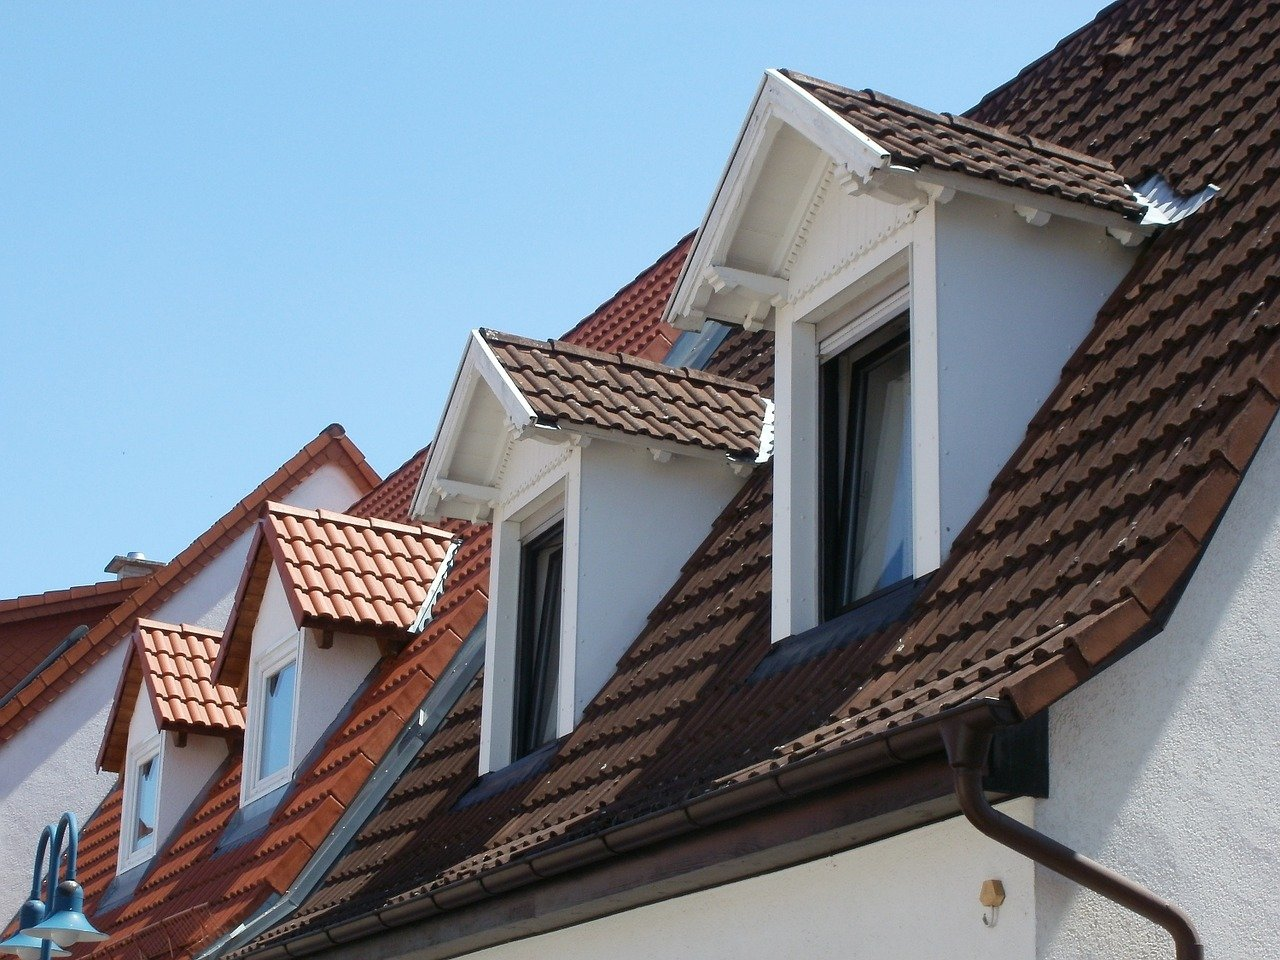 Additional Services Roofing Services Roofing Contractor McCormack Roofing Orange County CA High Quality Award Winning Roofing Contractor